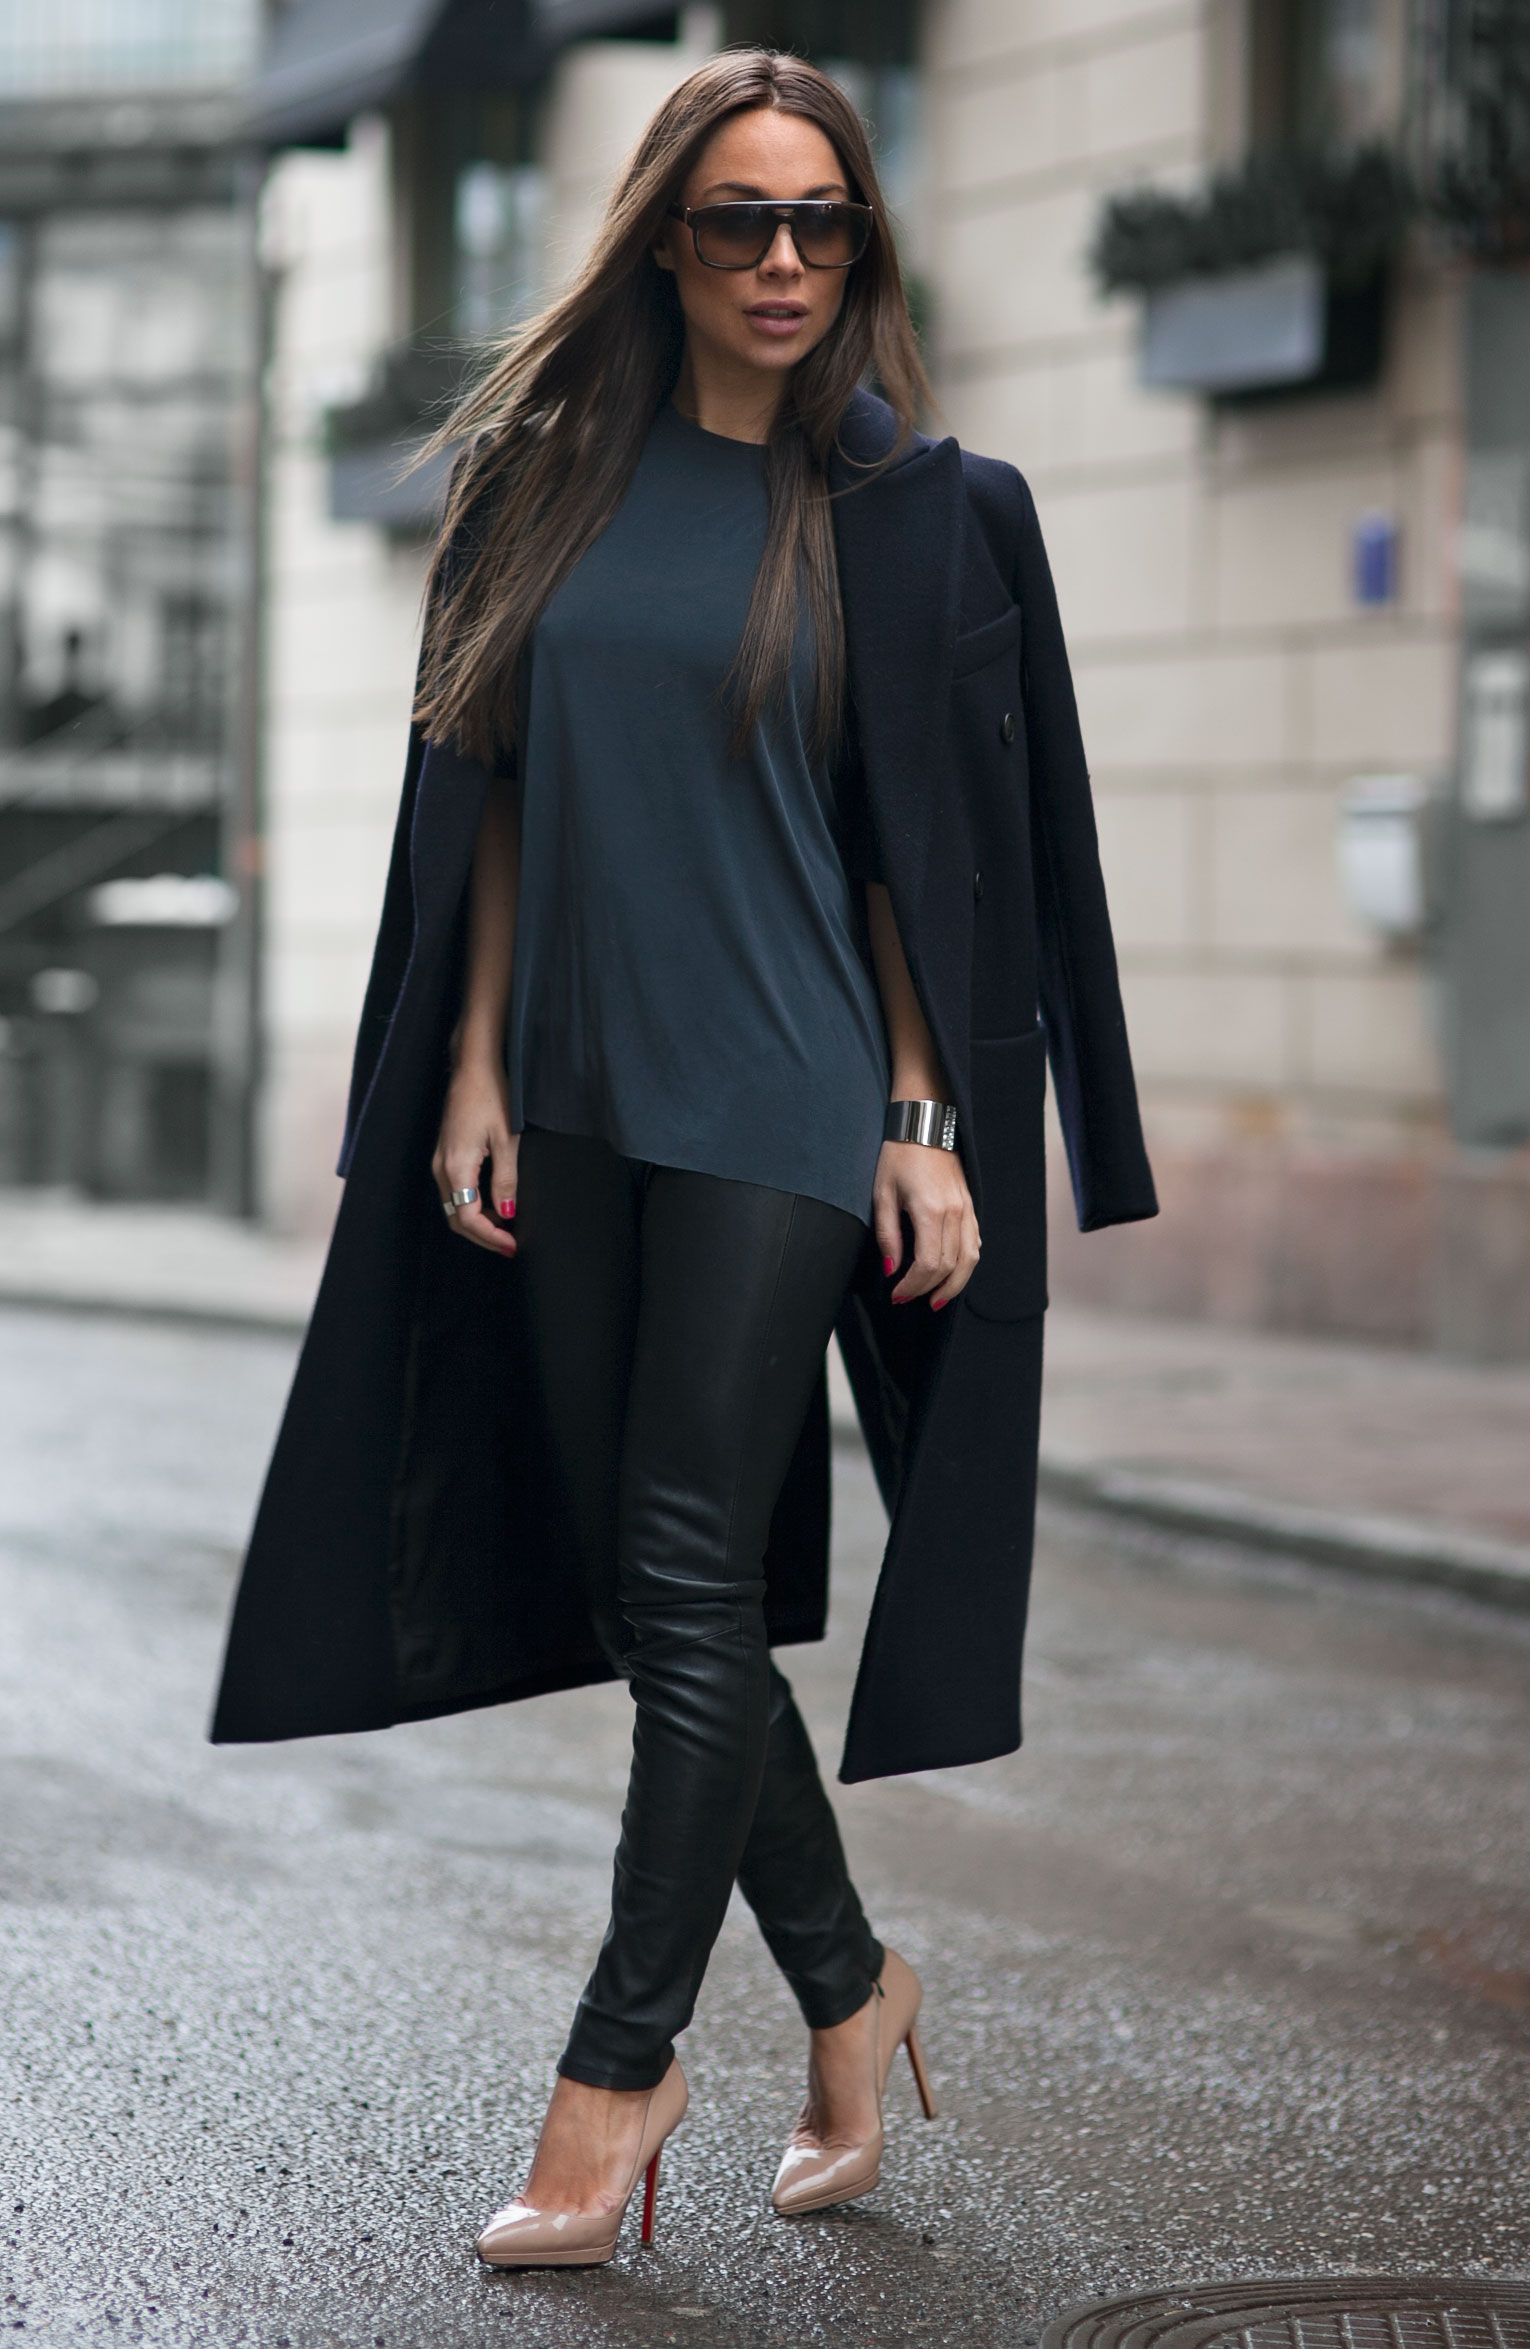 Street Style, January 2015 - Just The Design